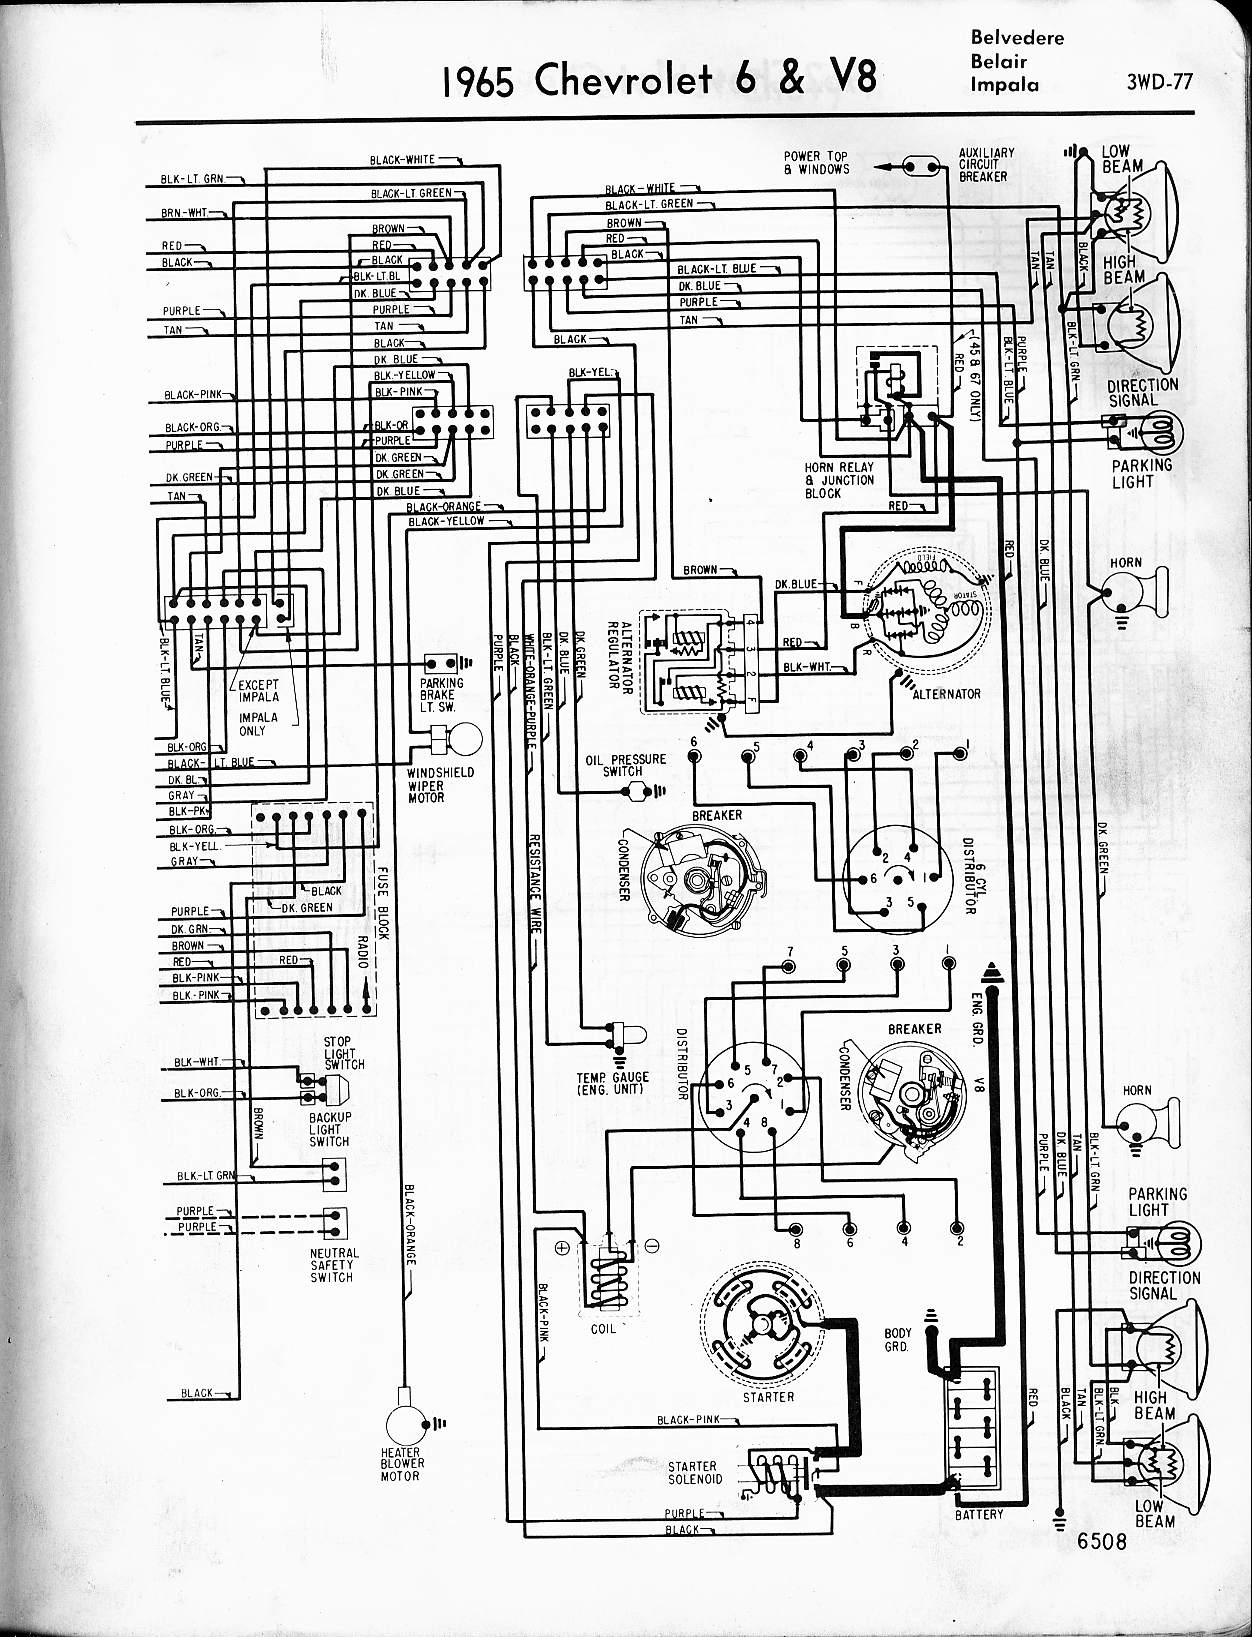 66 Chevelle Fuse Block Wiring Diagram Free Download Wiring Diagram on 64 chevelle engine compartment, 64 chevelle trunk latch, 64 chevelle hood latch, 66 mustang wiring harness, 64 chevelle trunk lid, 64 chevelle ignition wiring, 64 chevelle tail lights, 64 chevelle motor mounts, 69 camaro wiring harness, 67 mustang wiring harness, 64 chevelle hood scoop, 64 chevelle headlights,